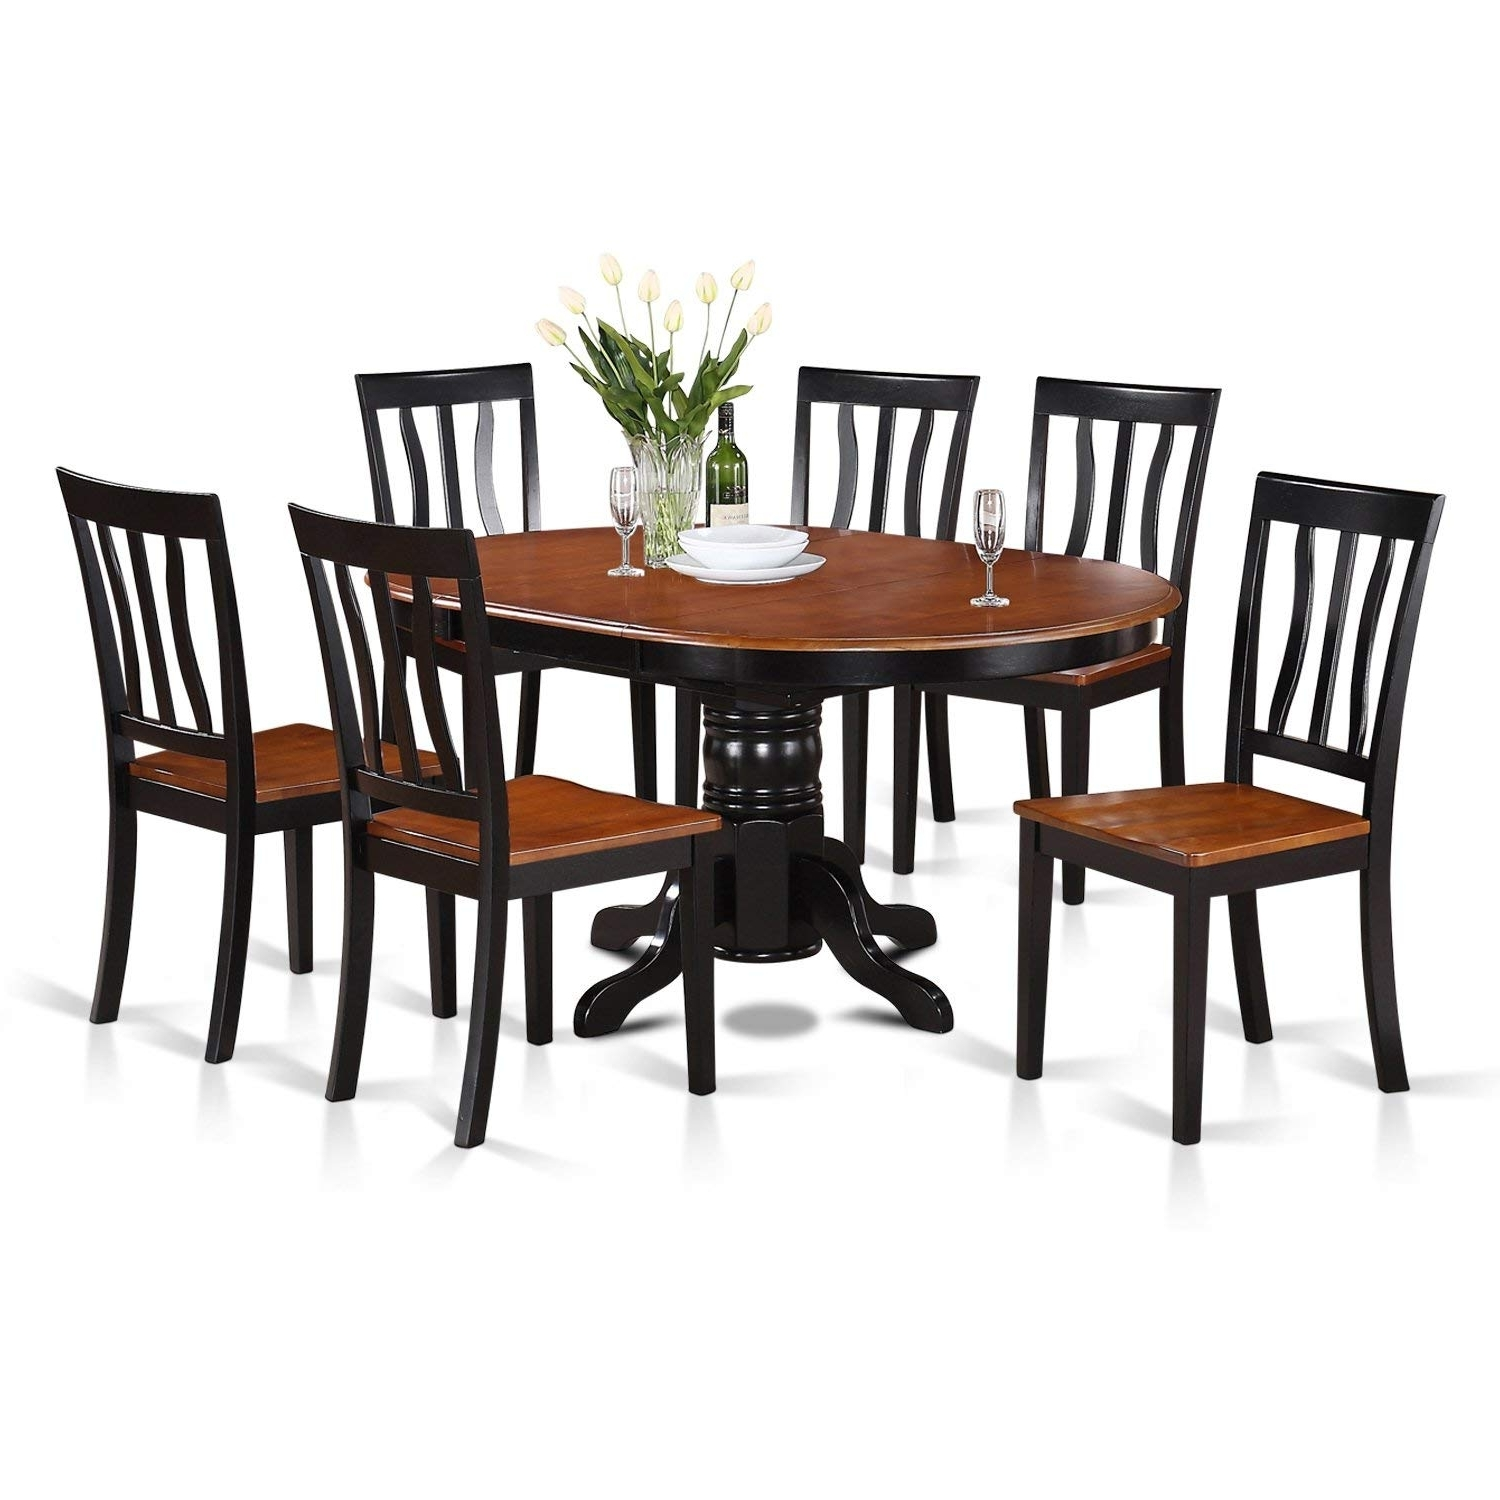 Jaxon 5 Piece Round Dining Sets With Upholstered Chairs with Favorite Amazon: East West Furniture Avat7-Blk-W 7-Piece Dining Table Set